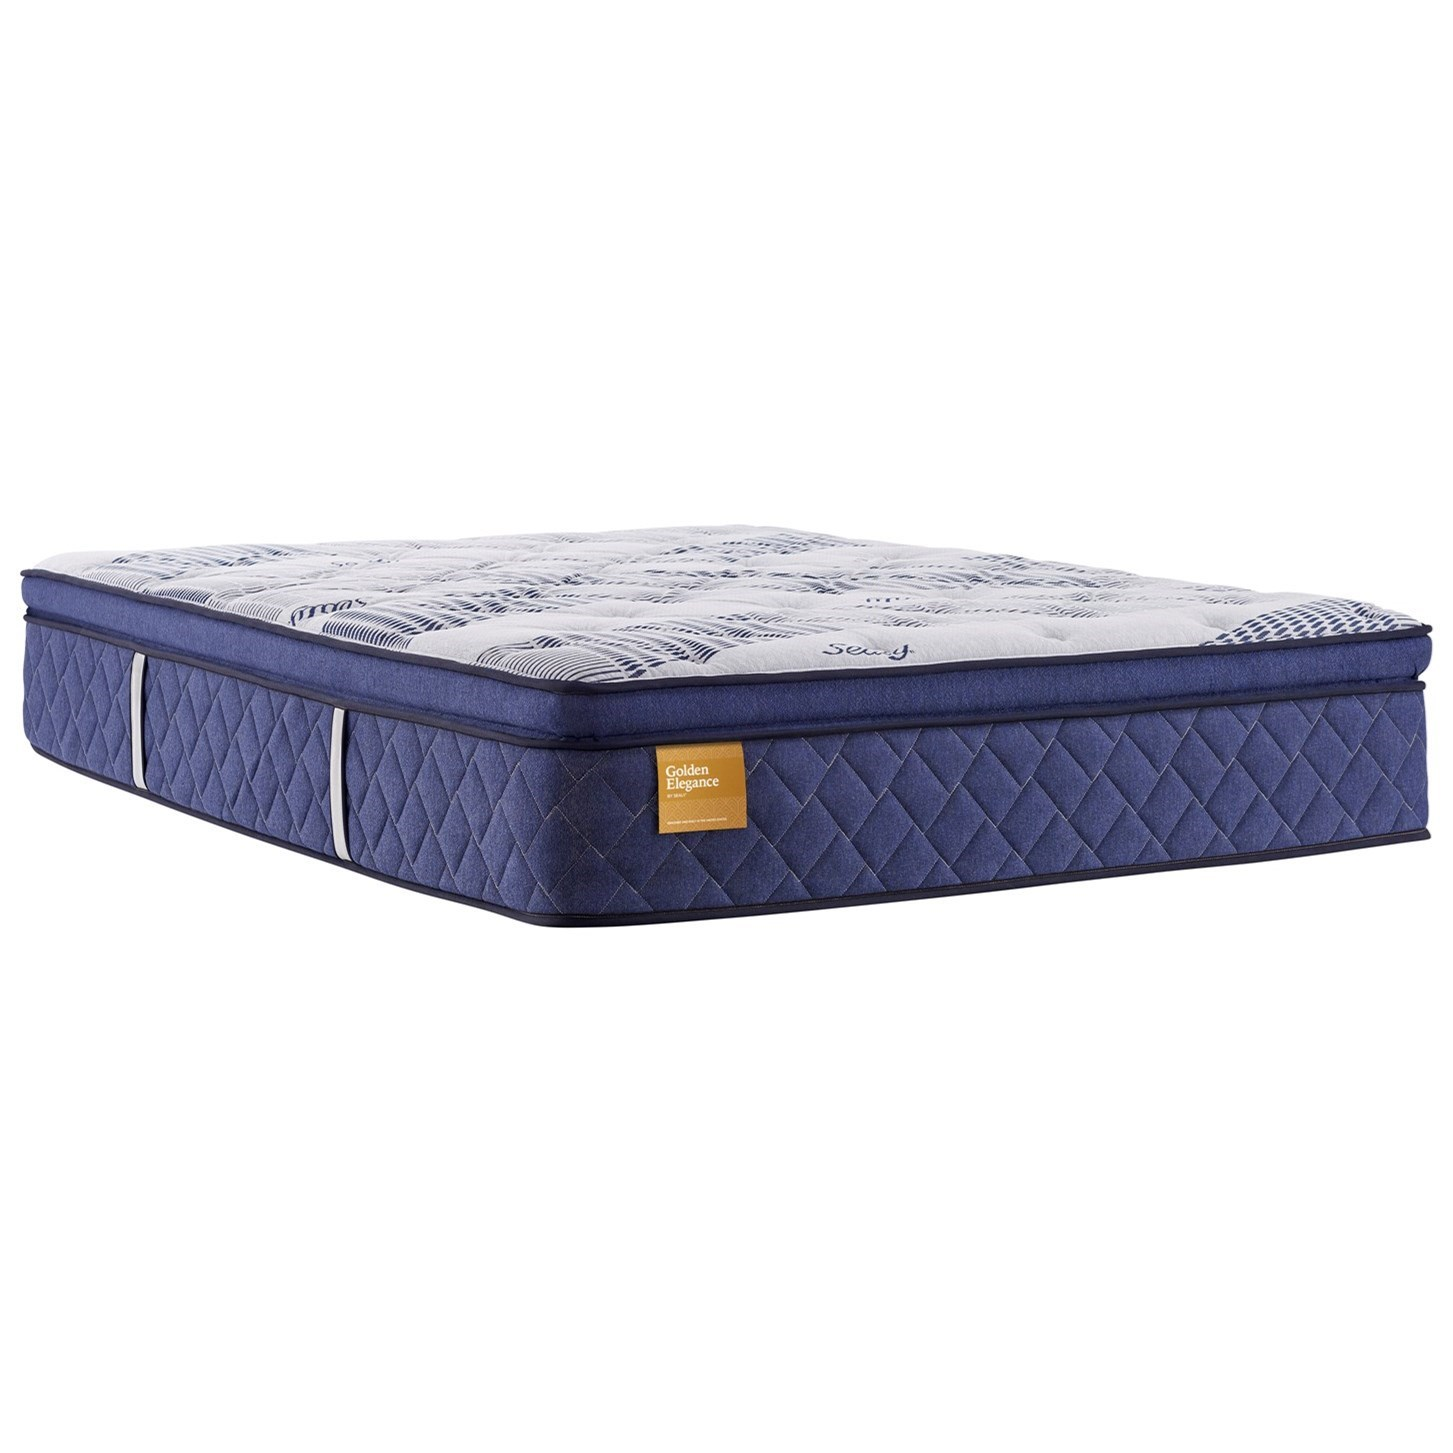 "Gilded Breath Plush PT B4 Full 14"" Plush Pillow Top Mattress by Sealy at Beck's Furniture"